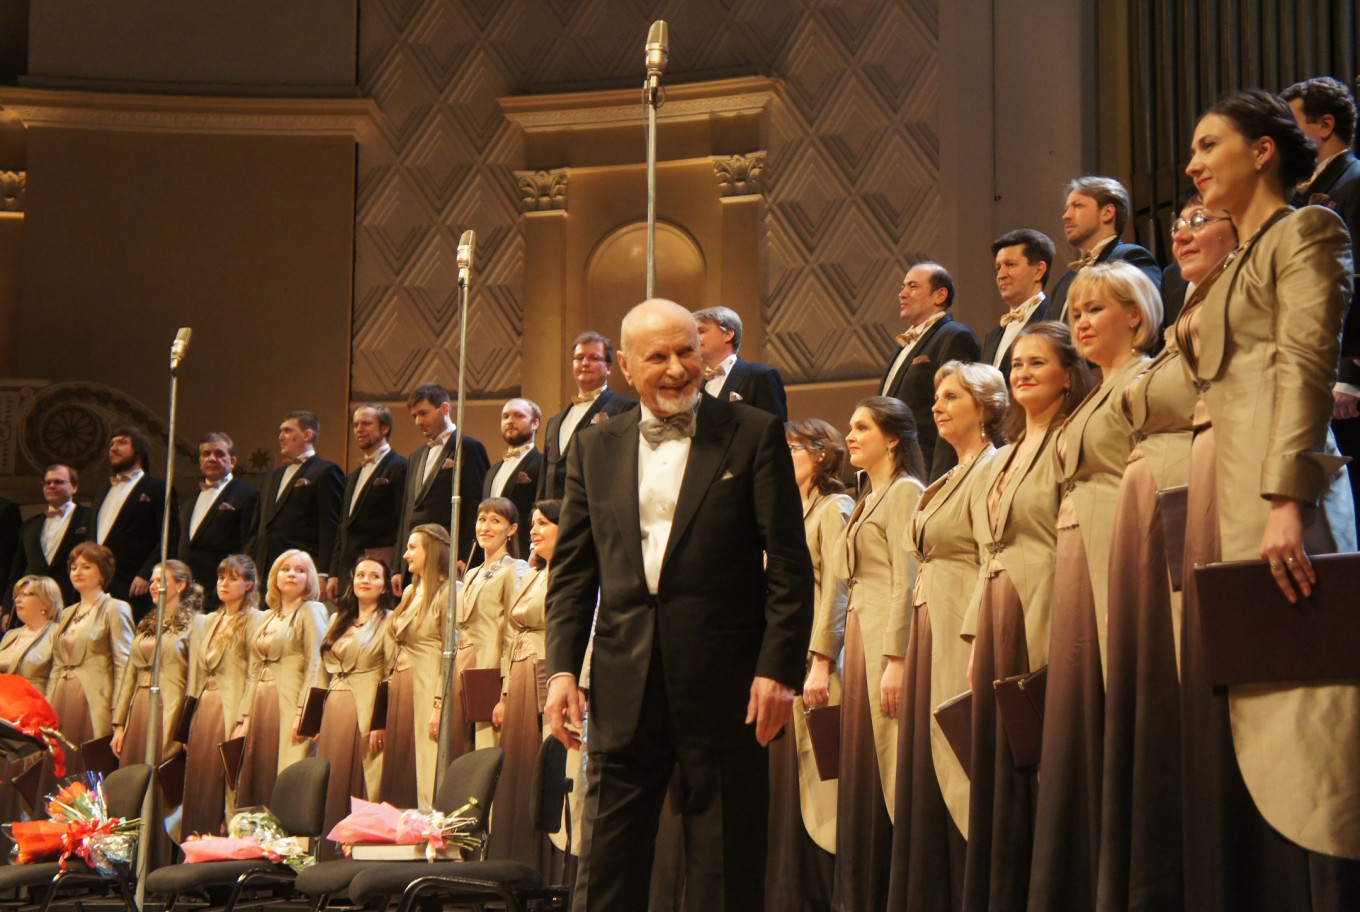 Founder Vladimir Minin has led the Moscow Chamber Choir since its first concert at the House of Scientists on April 23, 1972. ILYA MARSHAK